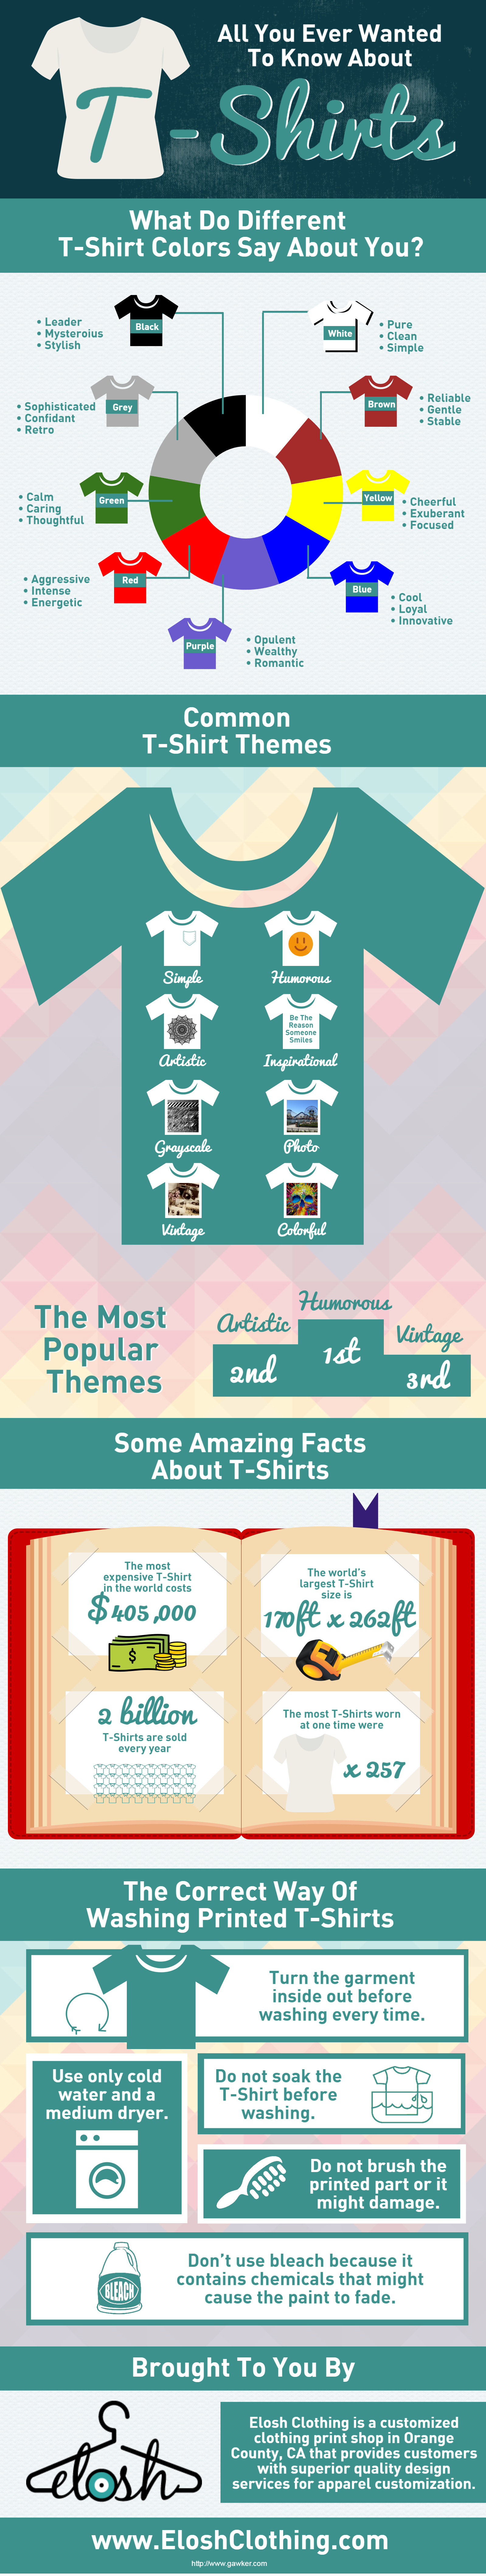 All You Ever Wanted To Know About T-Shirts